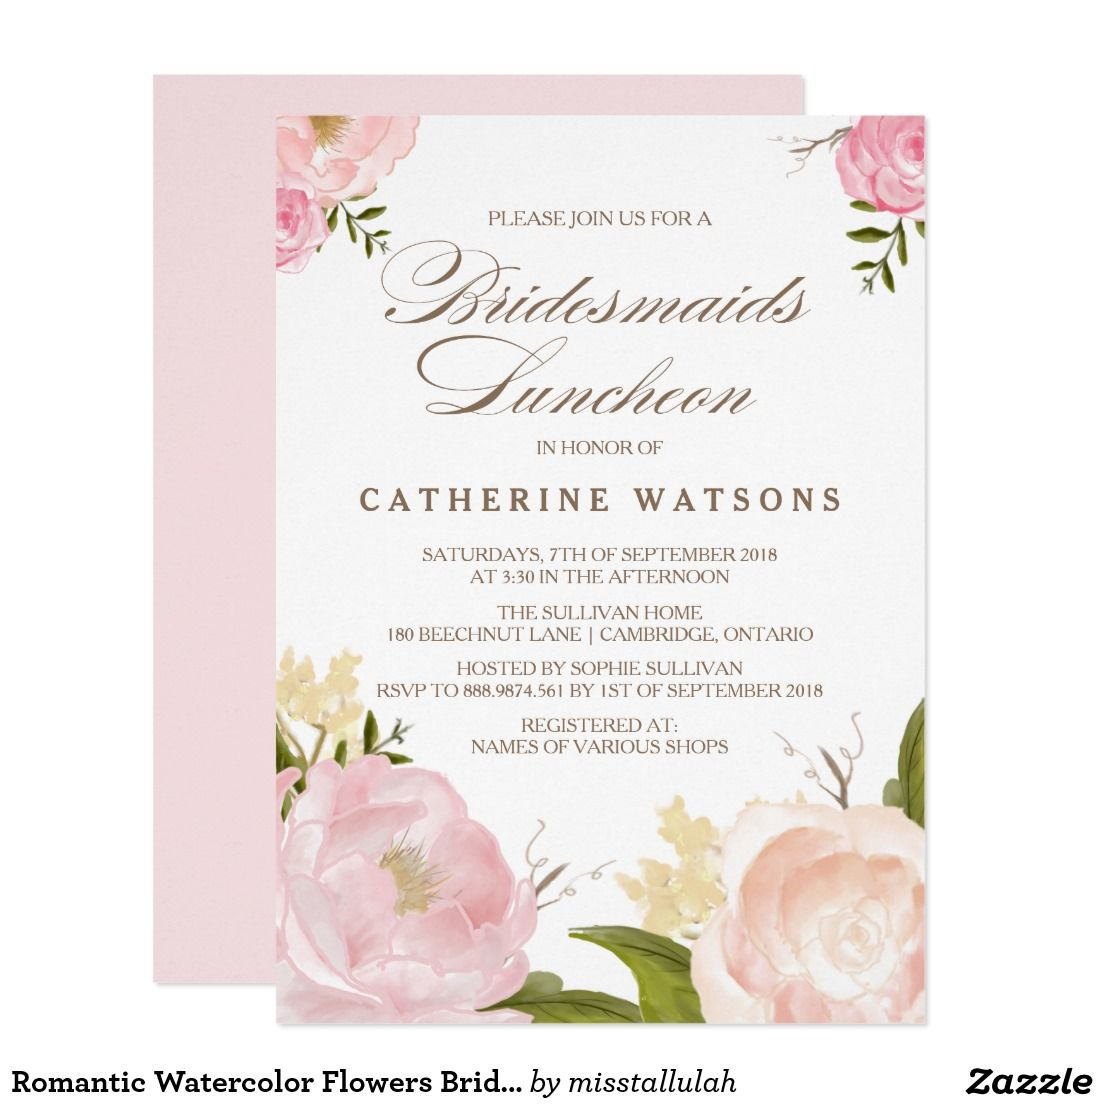 Romantic Watercolor Flowers Bridesmaids Luncheon Wedding Bridal